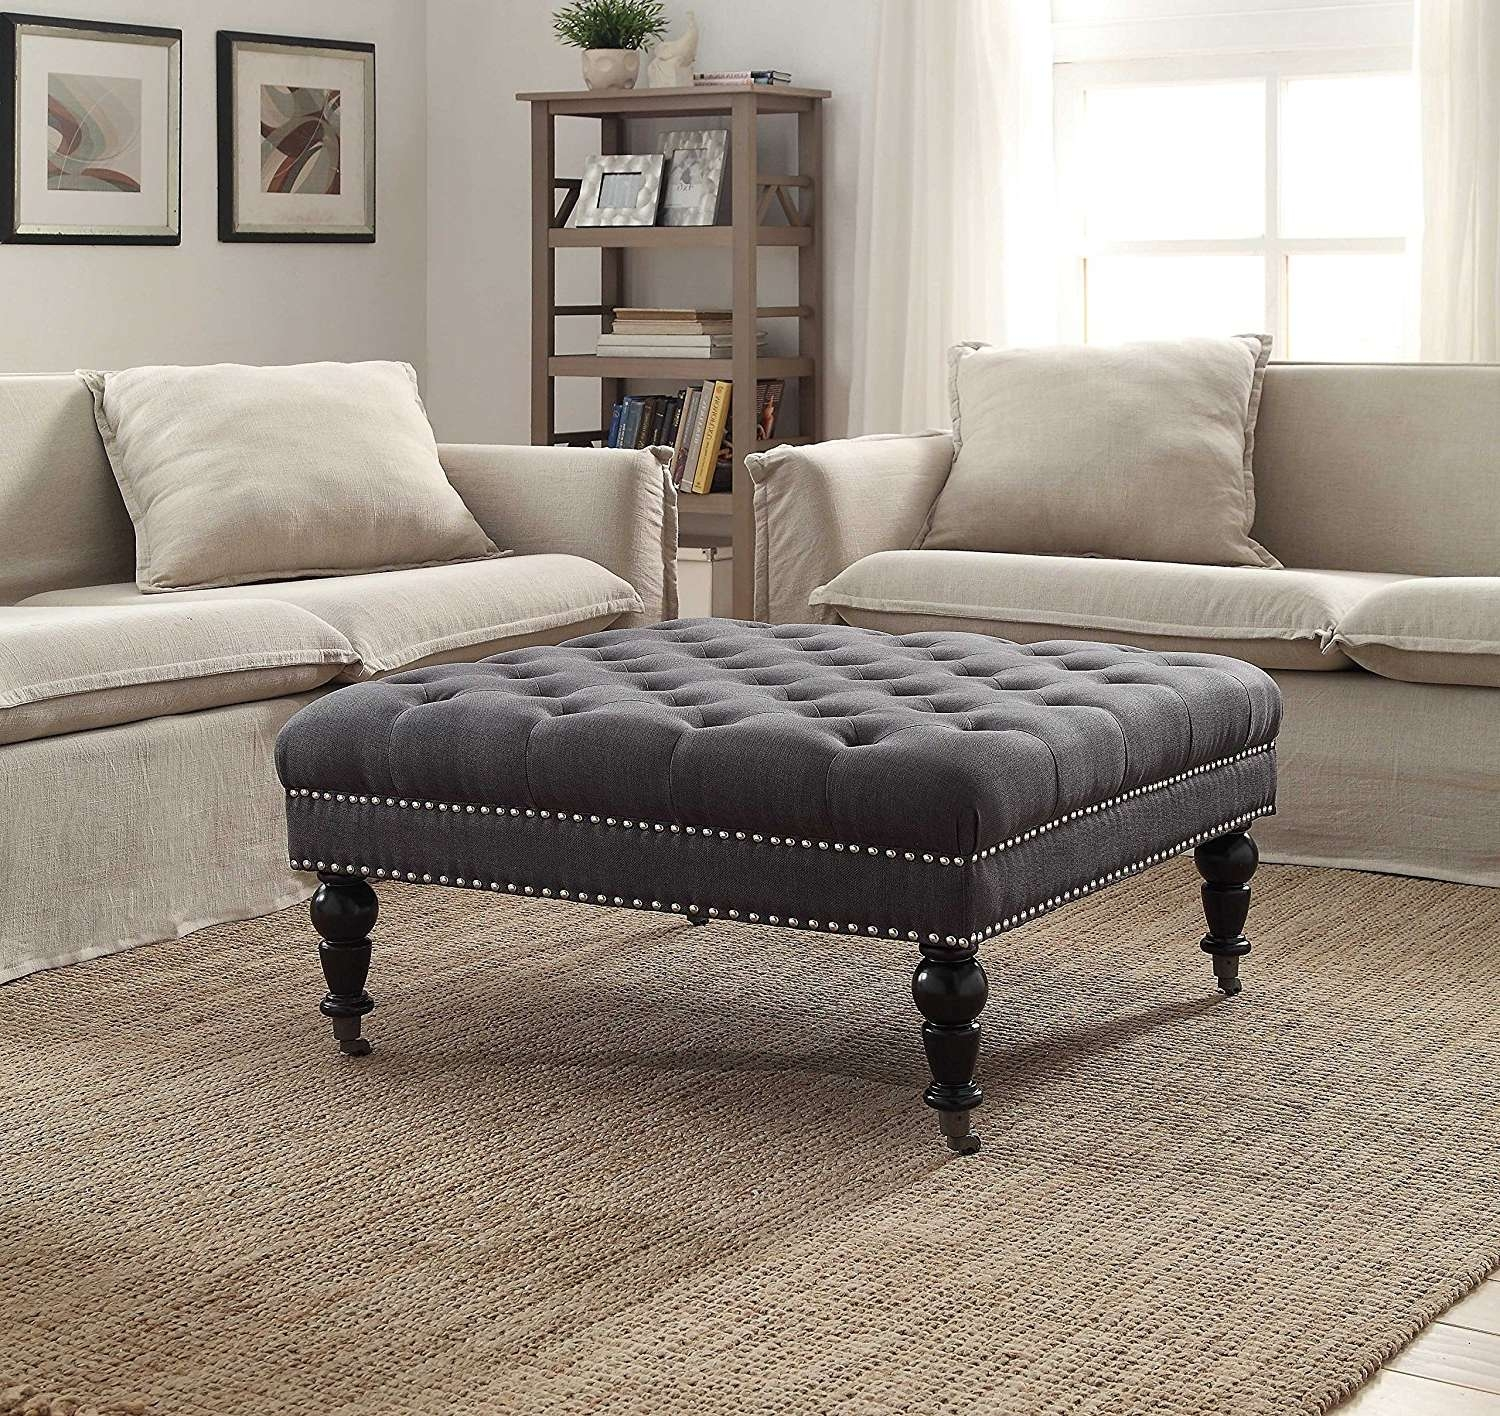 Well Known Fabric Coffee Tables Within Coffee Tables : Square Cocktail Ottoman Fabric Coffee Table Suede (View 18 of 20)